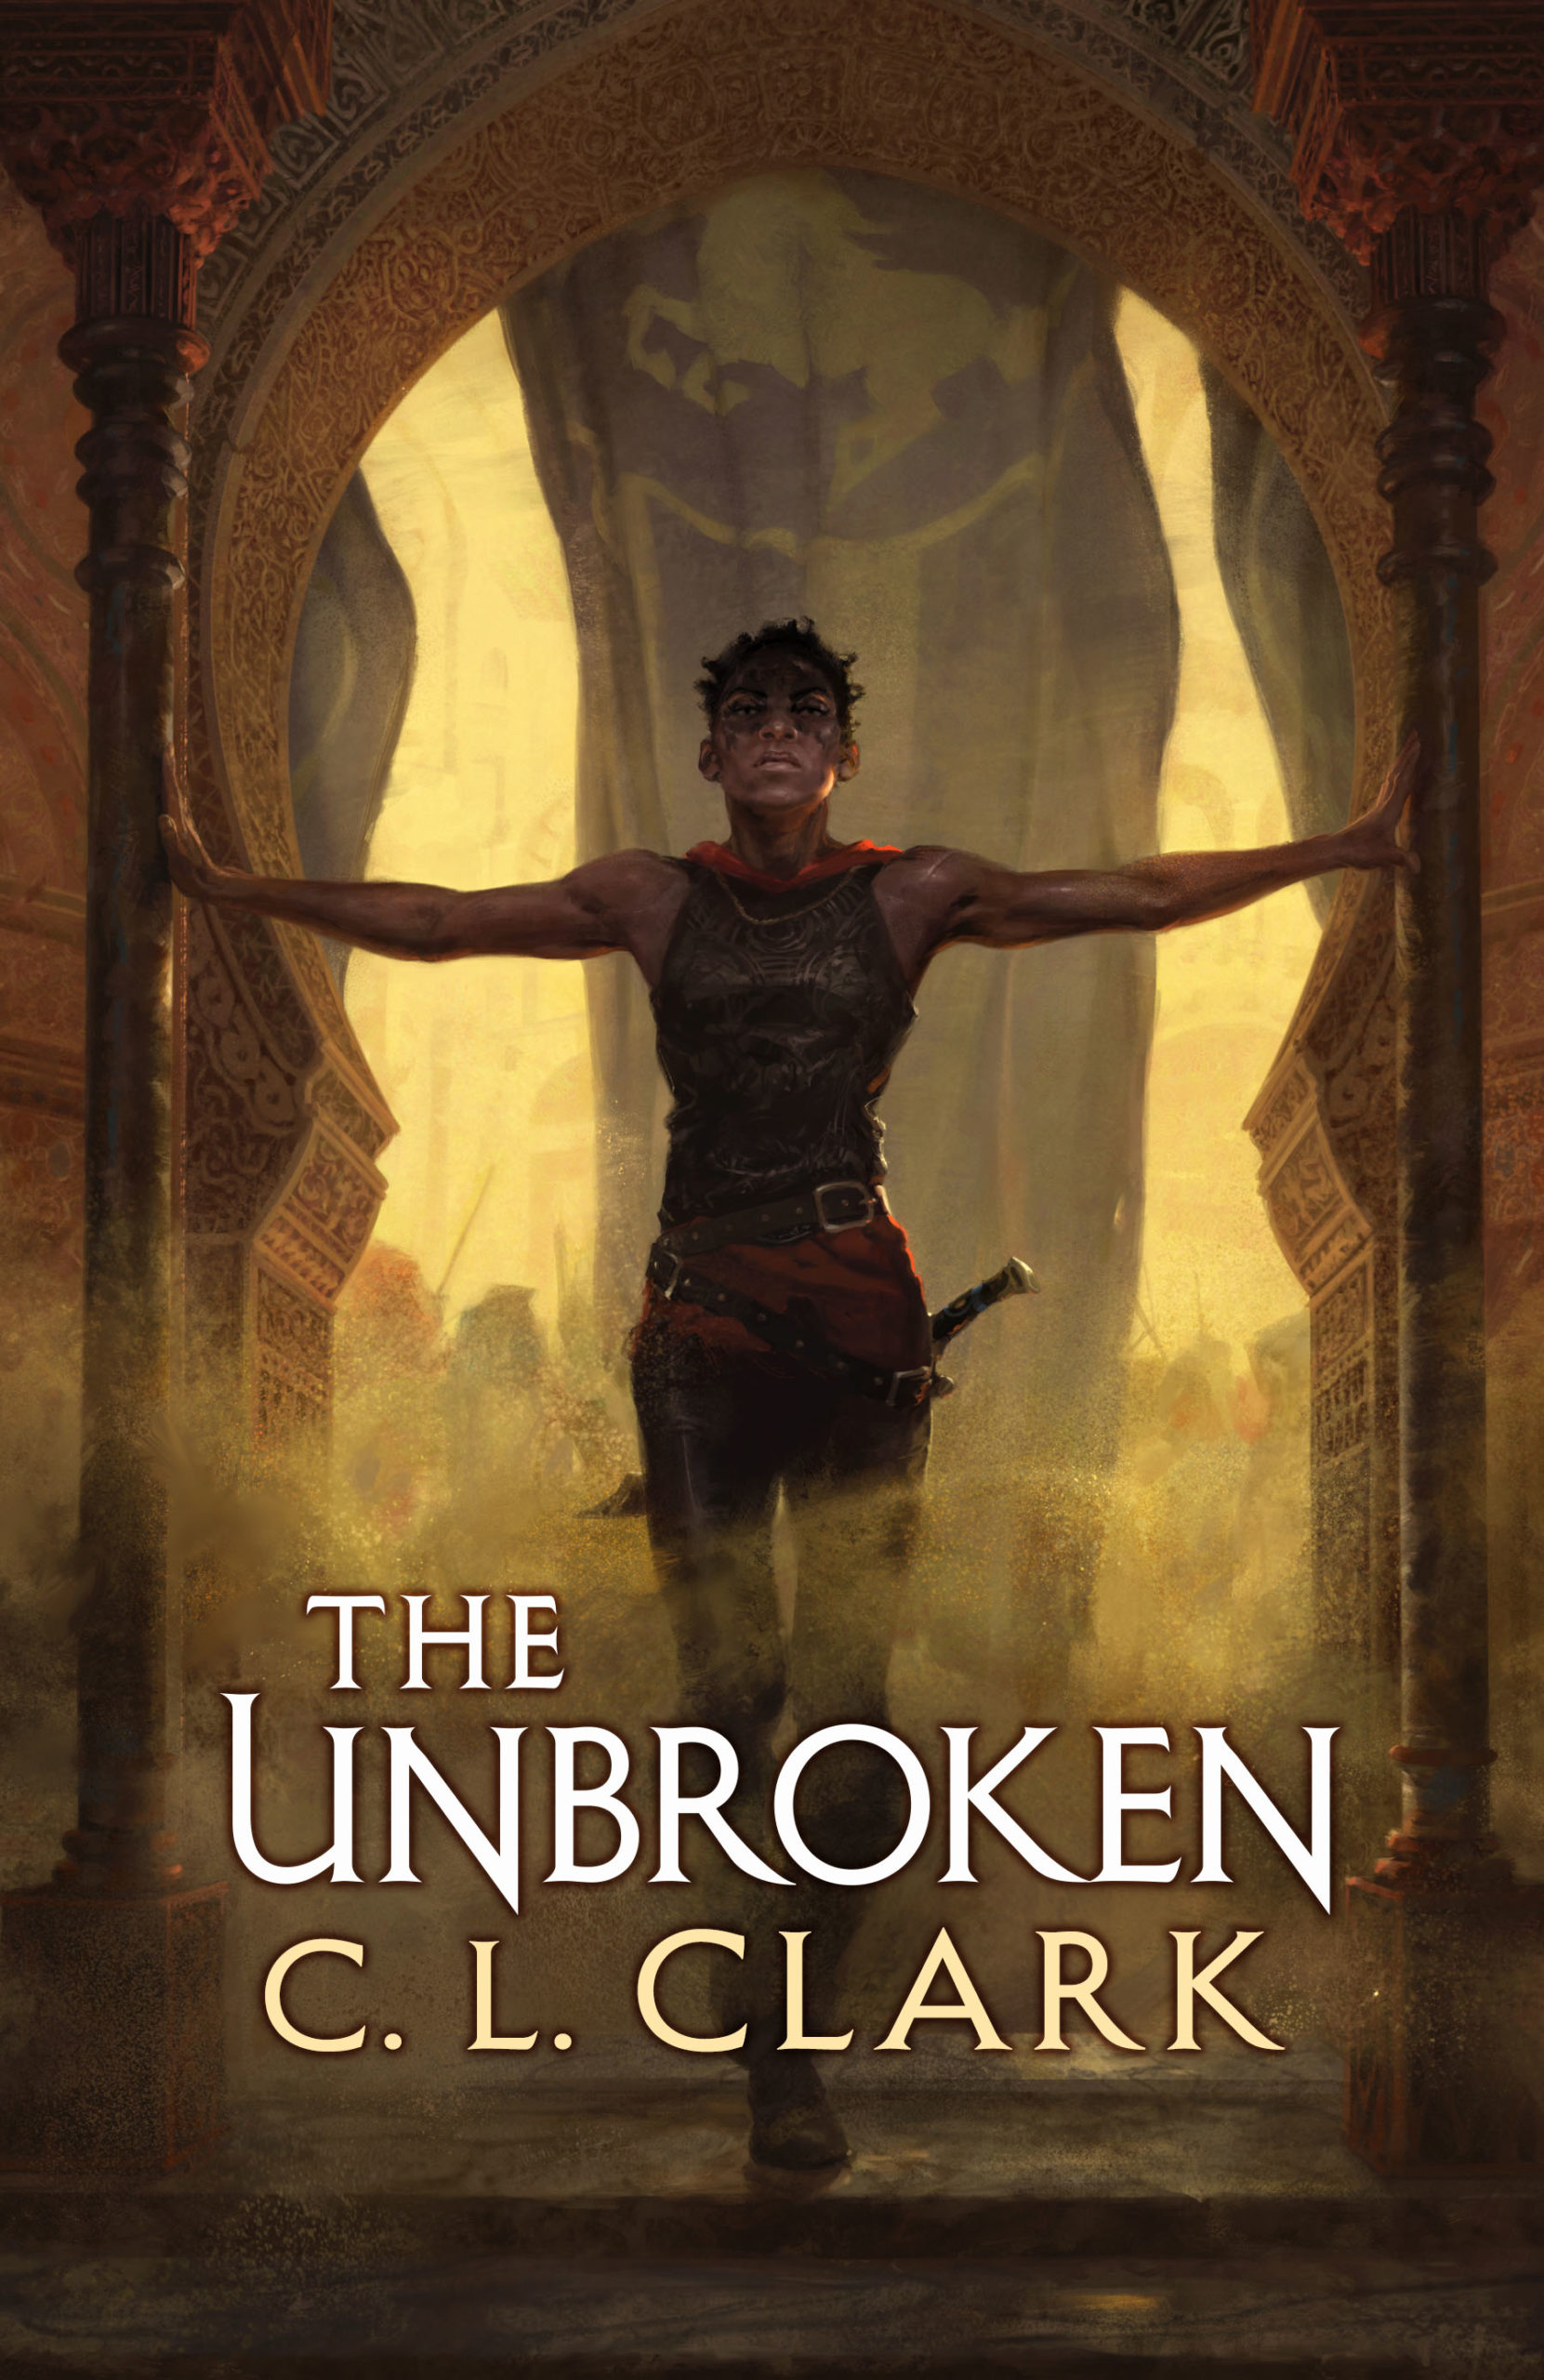 THE UNBROKEN by C. L. Clark - Orbit Books